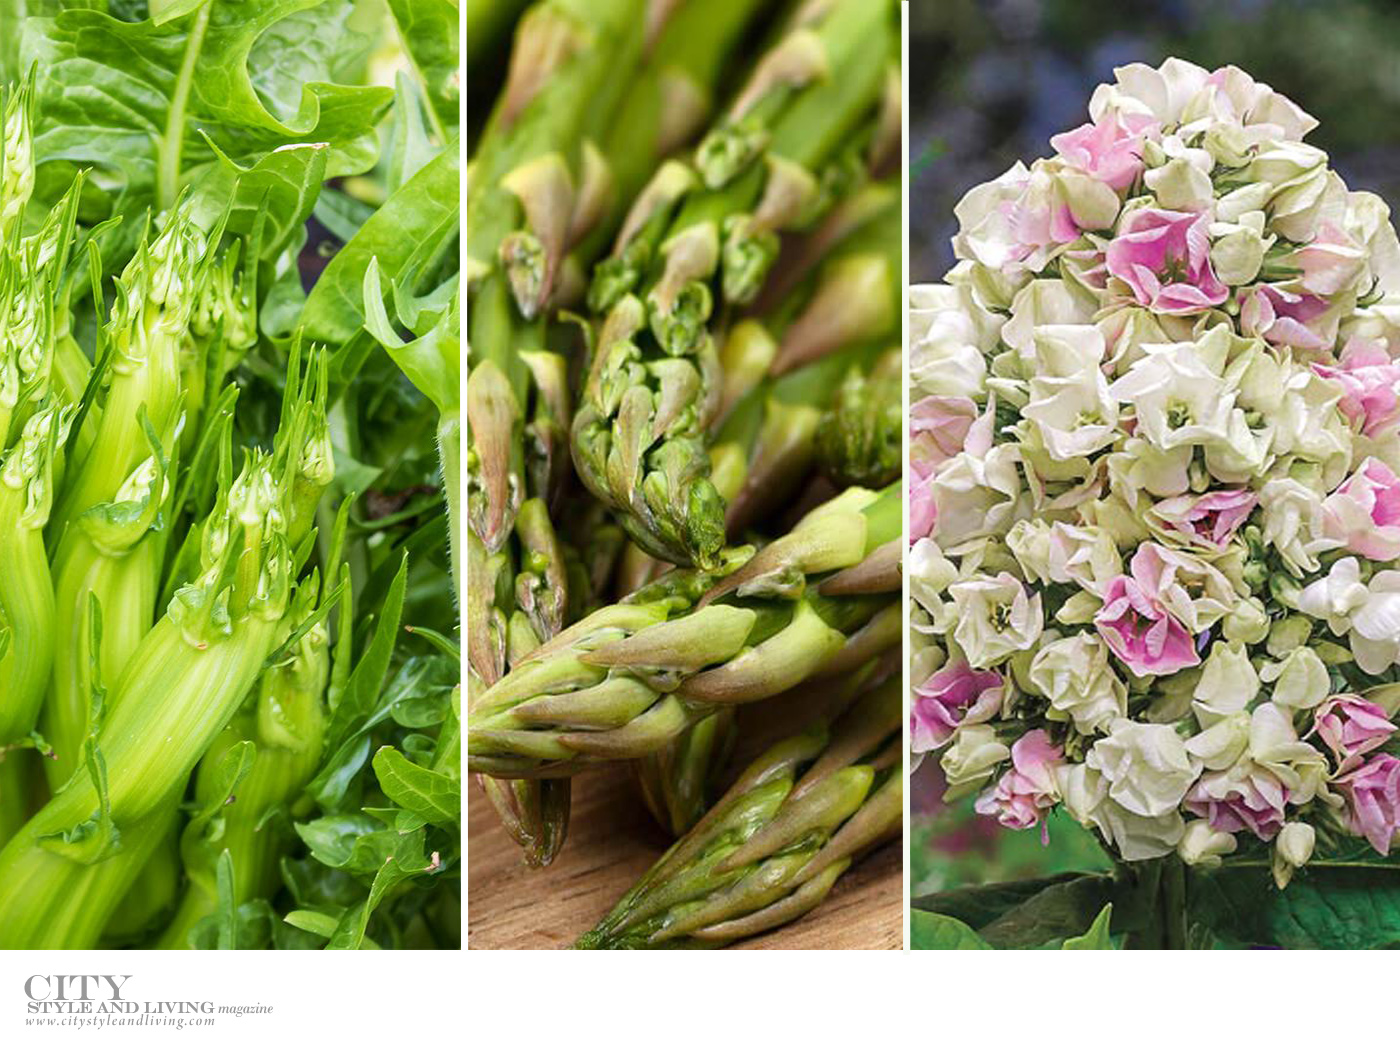 City Style and Living Magazine Healthy Living Plants to grow this season puntarelle and asparagus